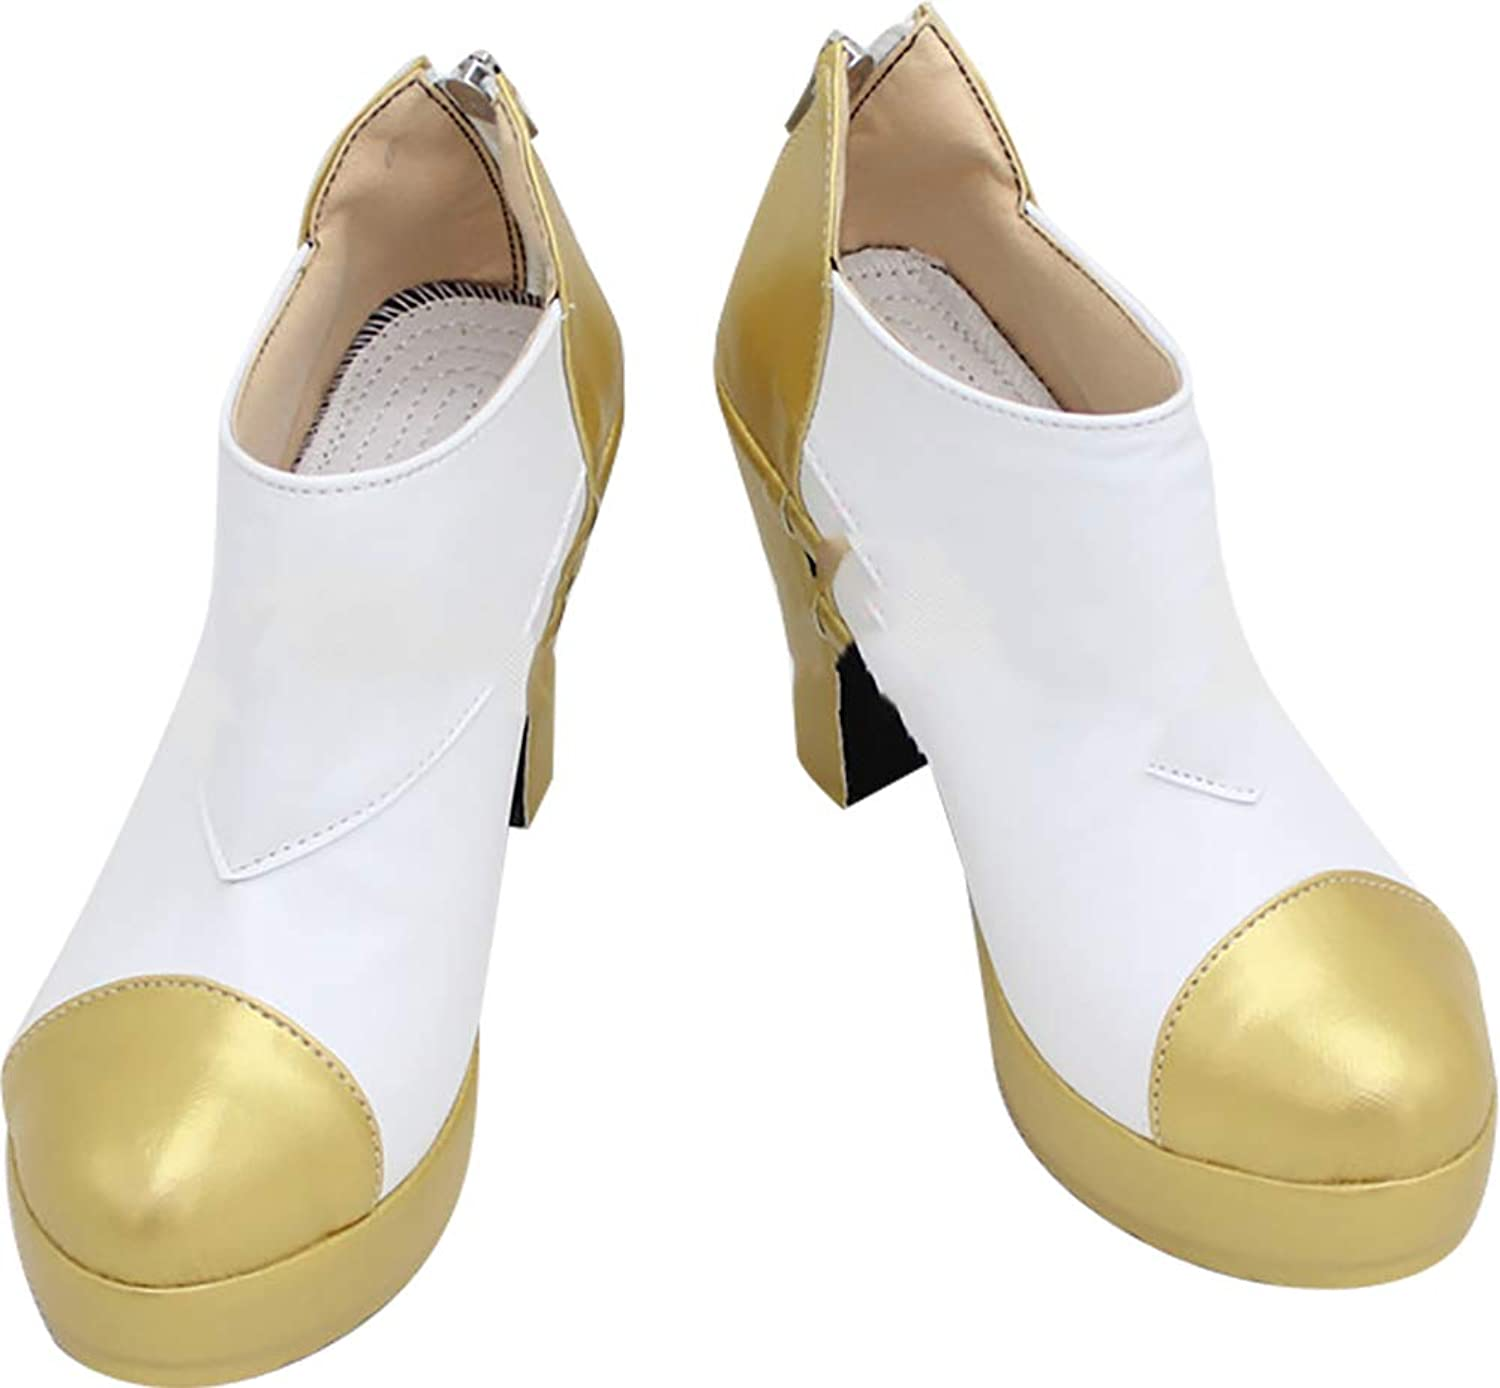 Whirl Cosplay Boots shoes for League of Legends Ahri gold